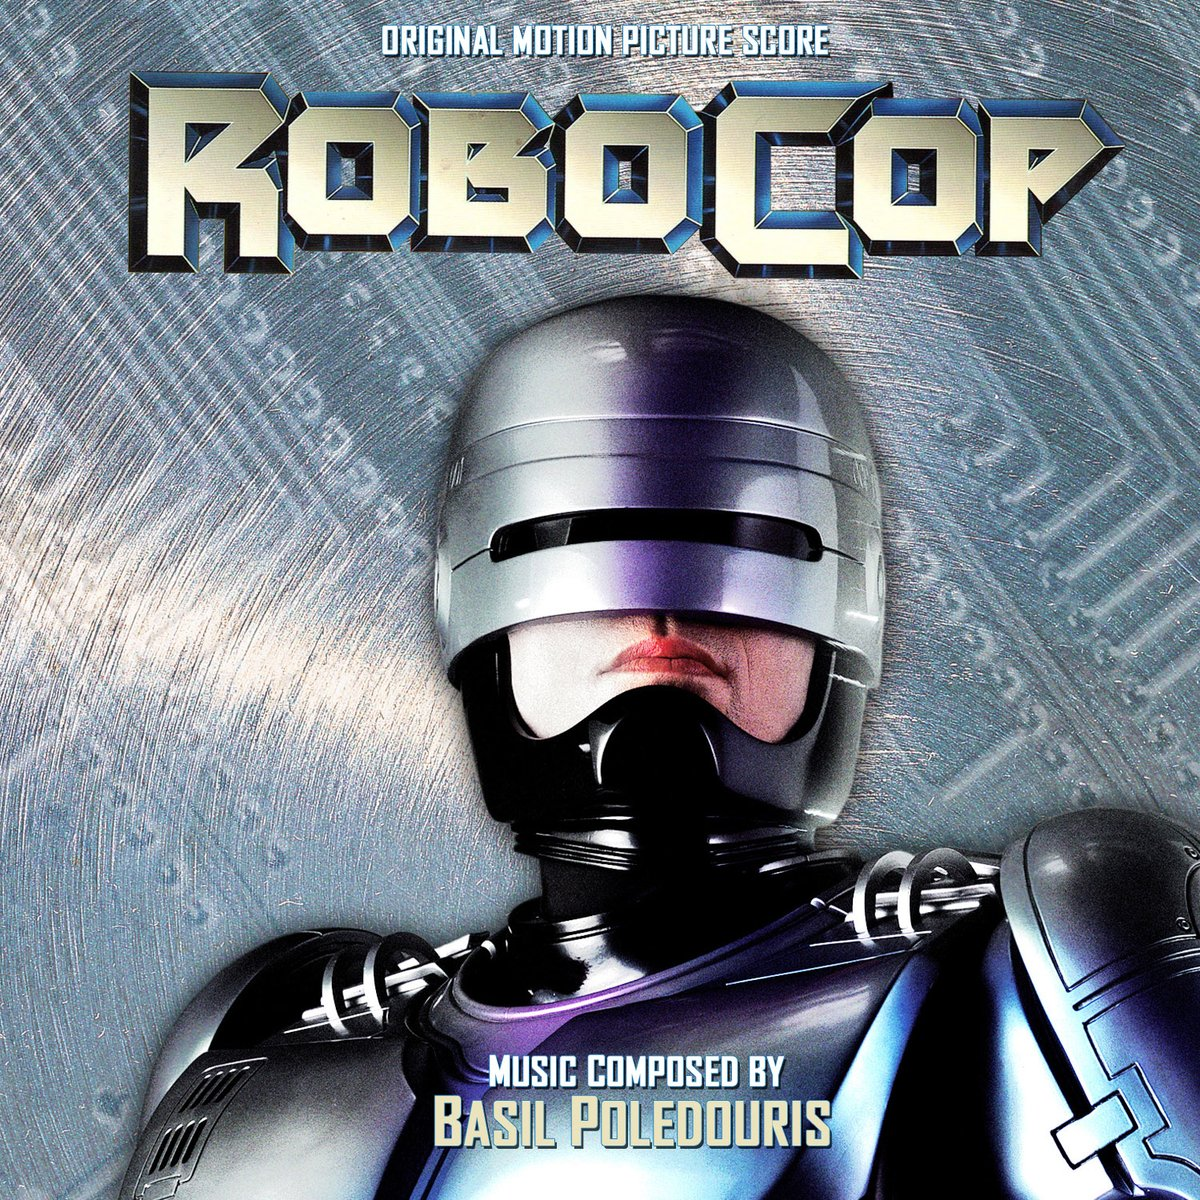 Album cover for the RoboCop (1987) original motion picture score by Basil Poledouris. #80s #SciFi #moviespic.twitter.com/cwXUzOHCzE